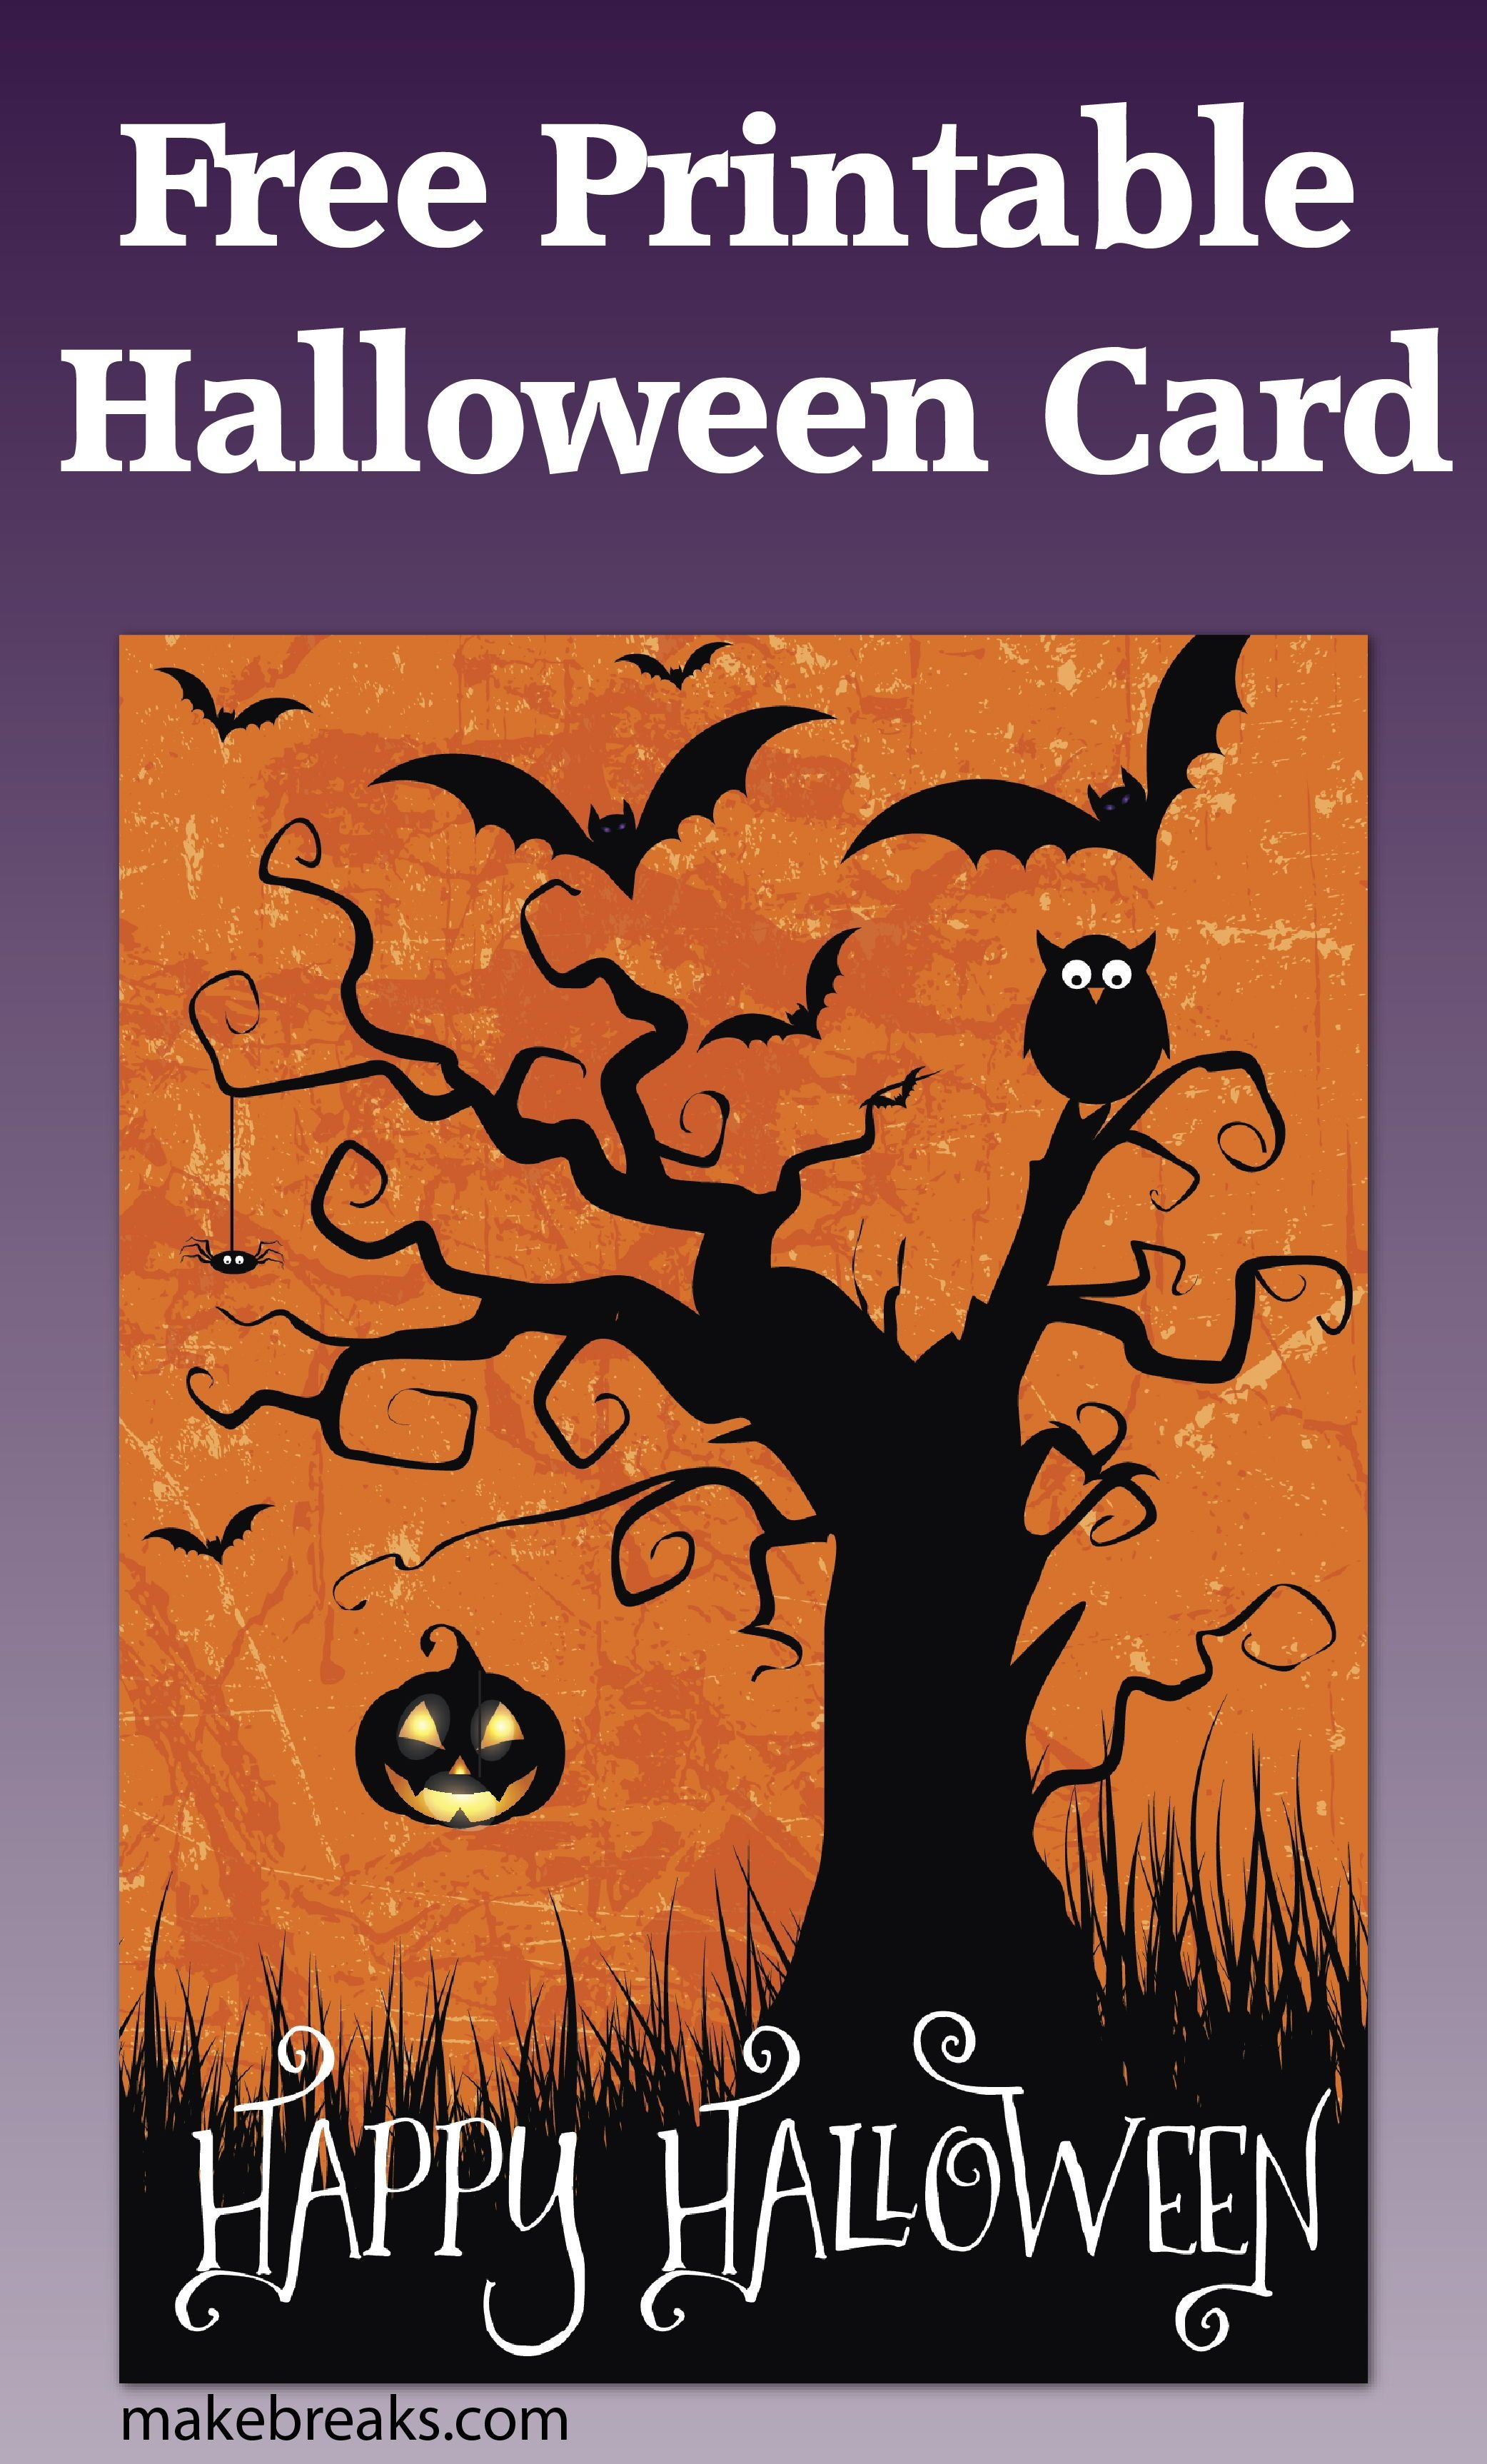 Free Printable Happy Halloween Card Or Party Invitation   Free Party - Printable Halloween Cards To Color For Free